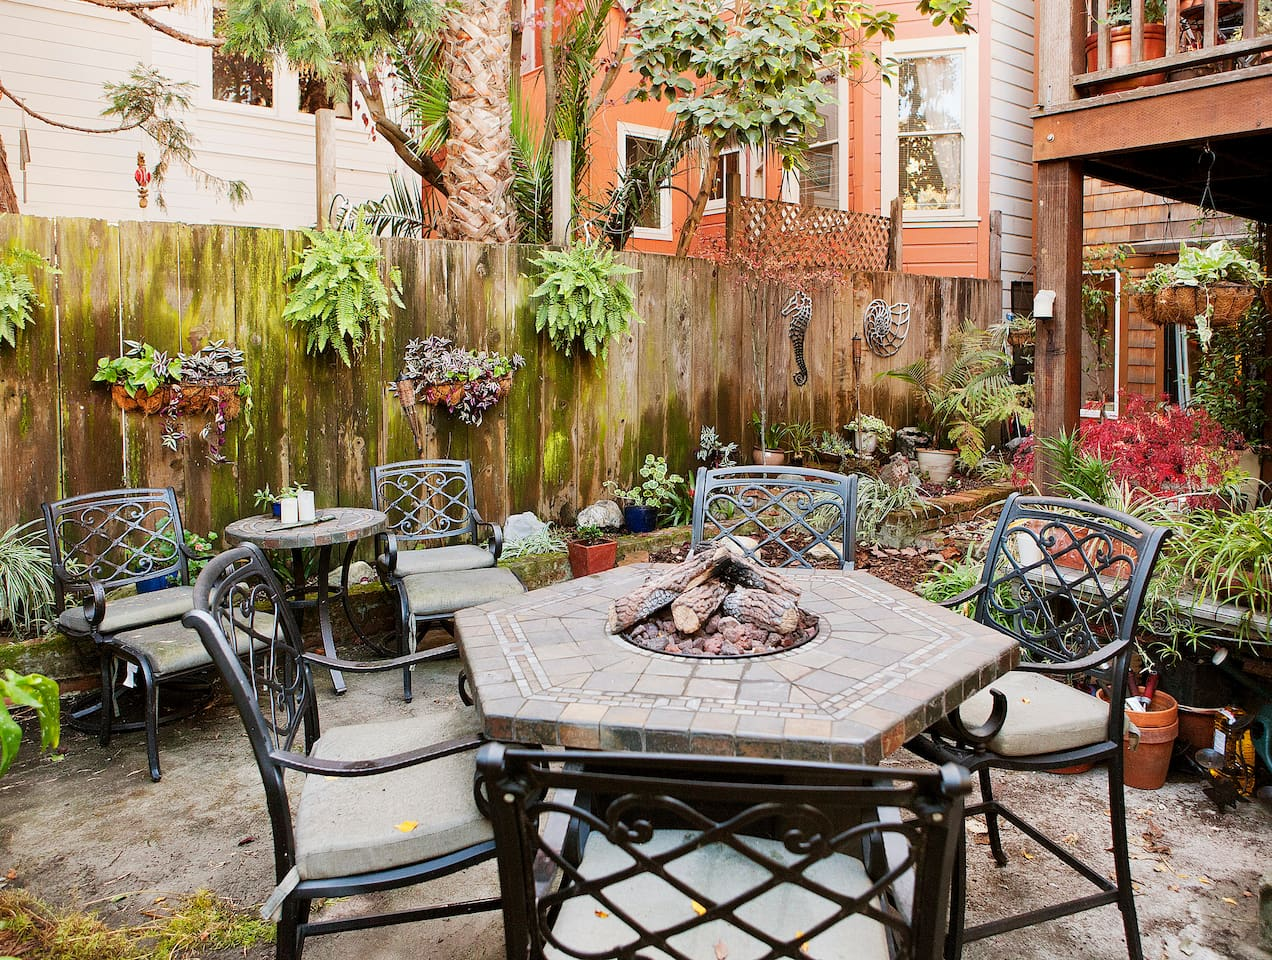 The Garden, Firepit Table and Small Table for 2